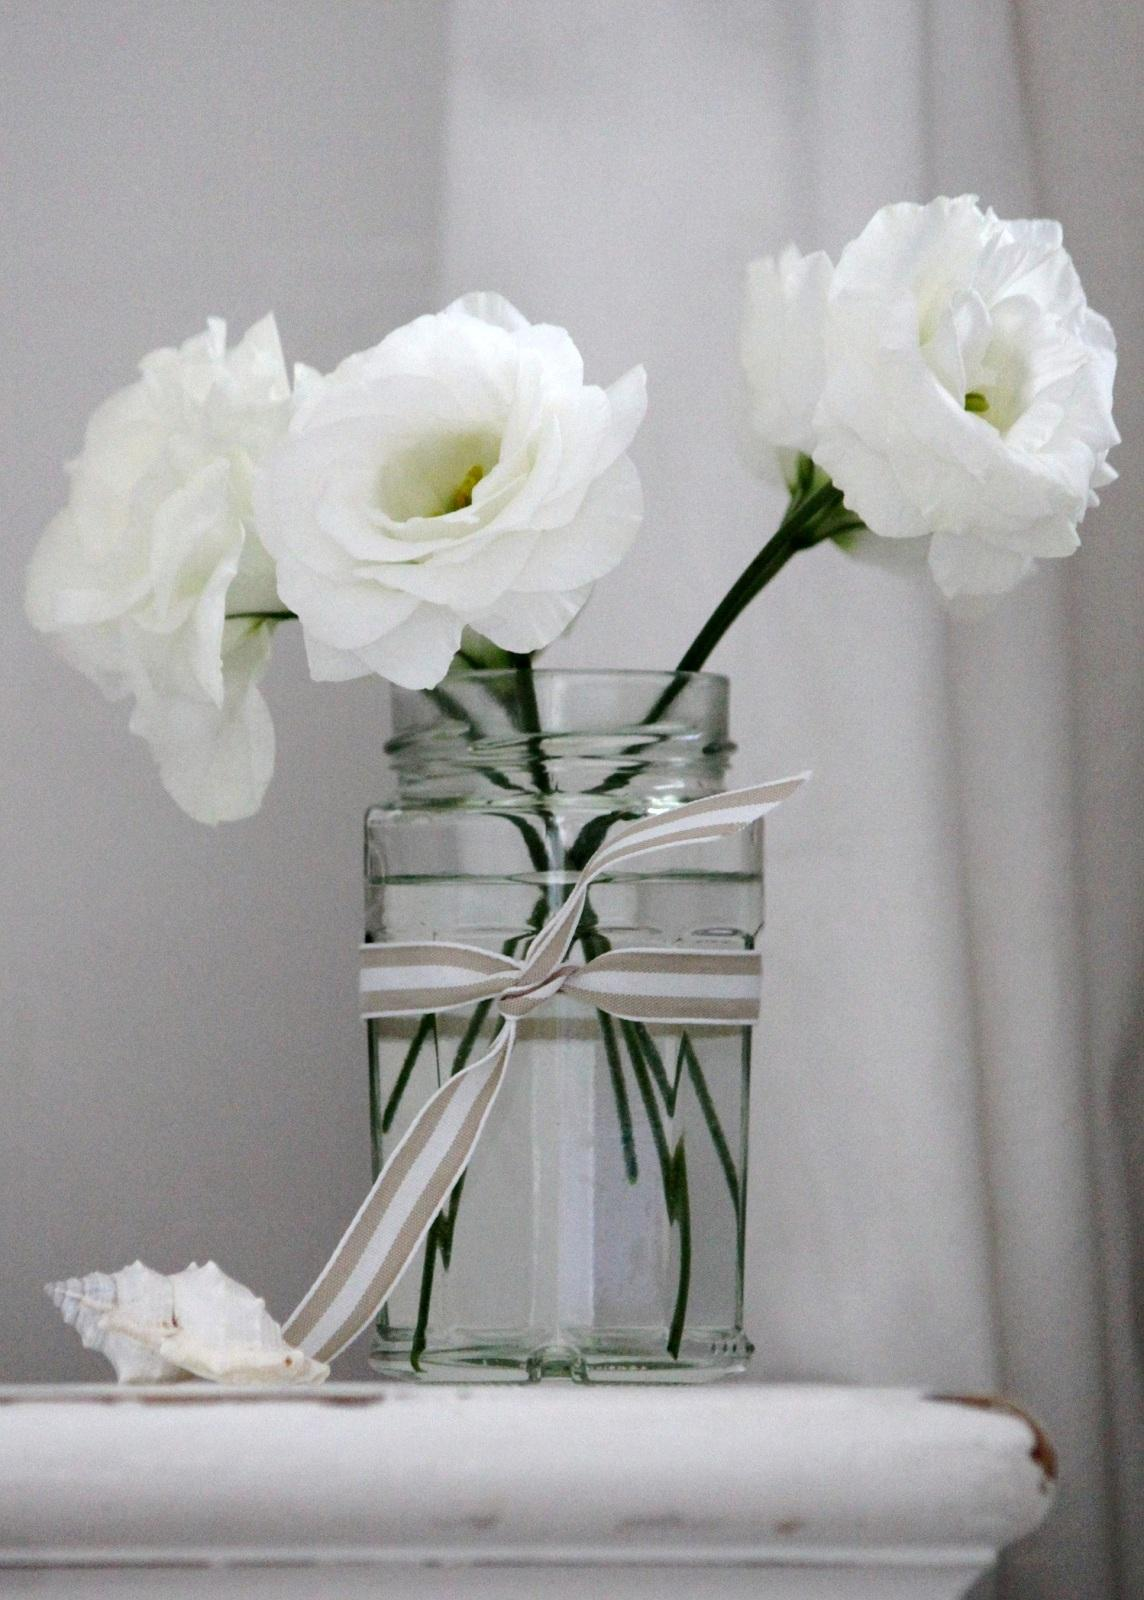 White Flowers in Jar